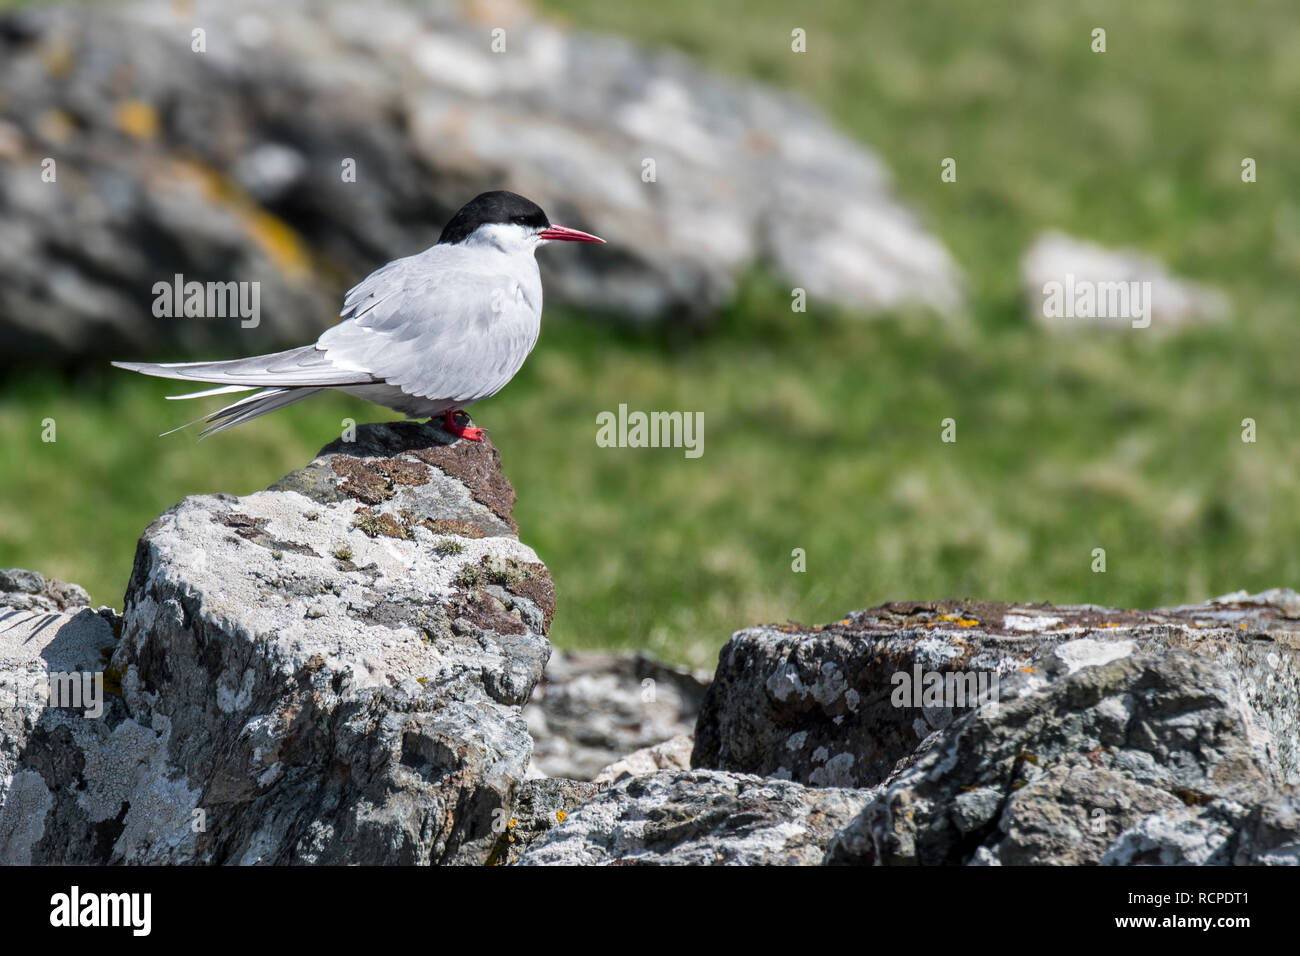 Arctic tern (Sterna paradisaea) perched on rock in spring / summer, Shetland Islands, Scotland, UK - Stock Image